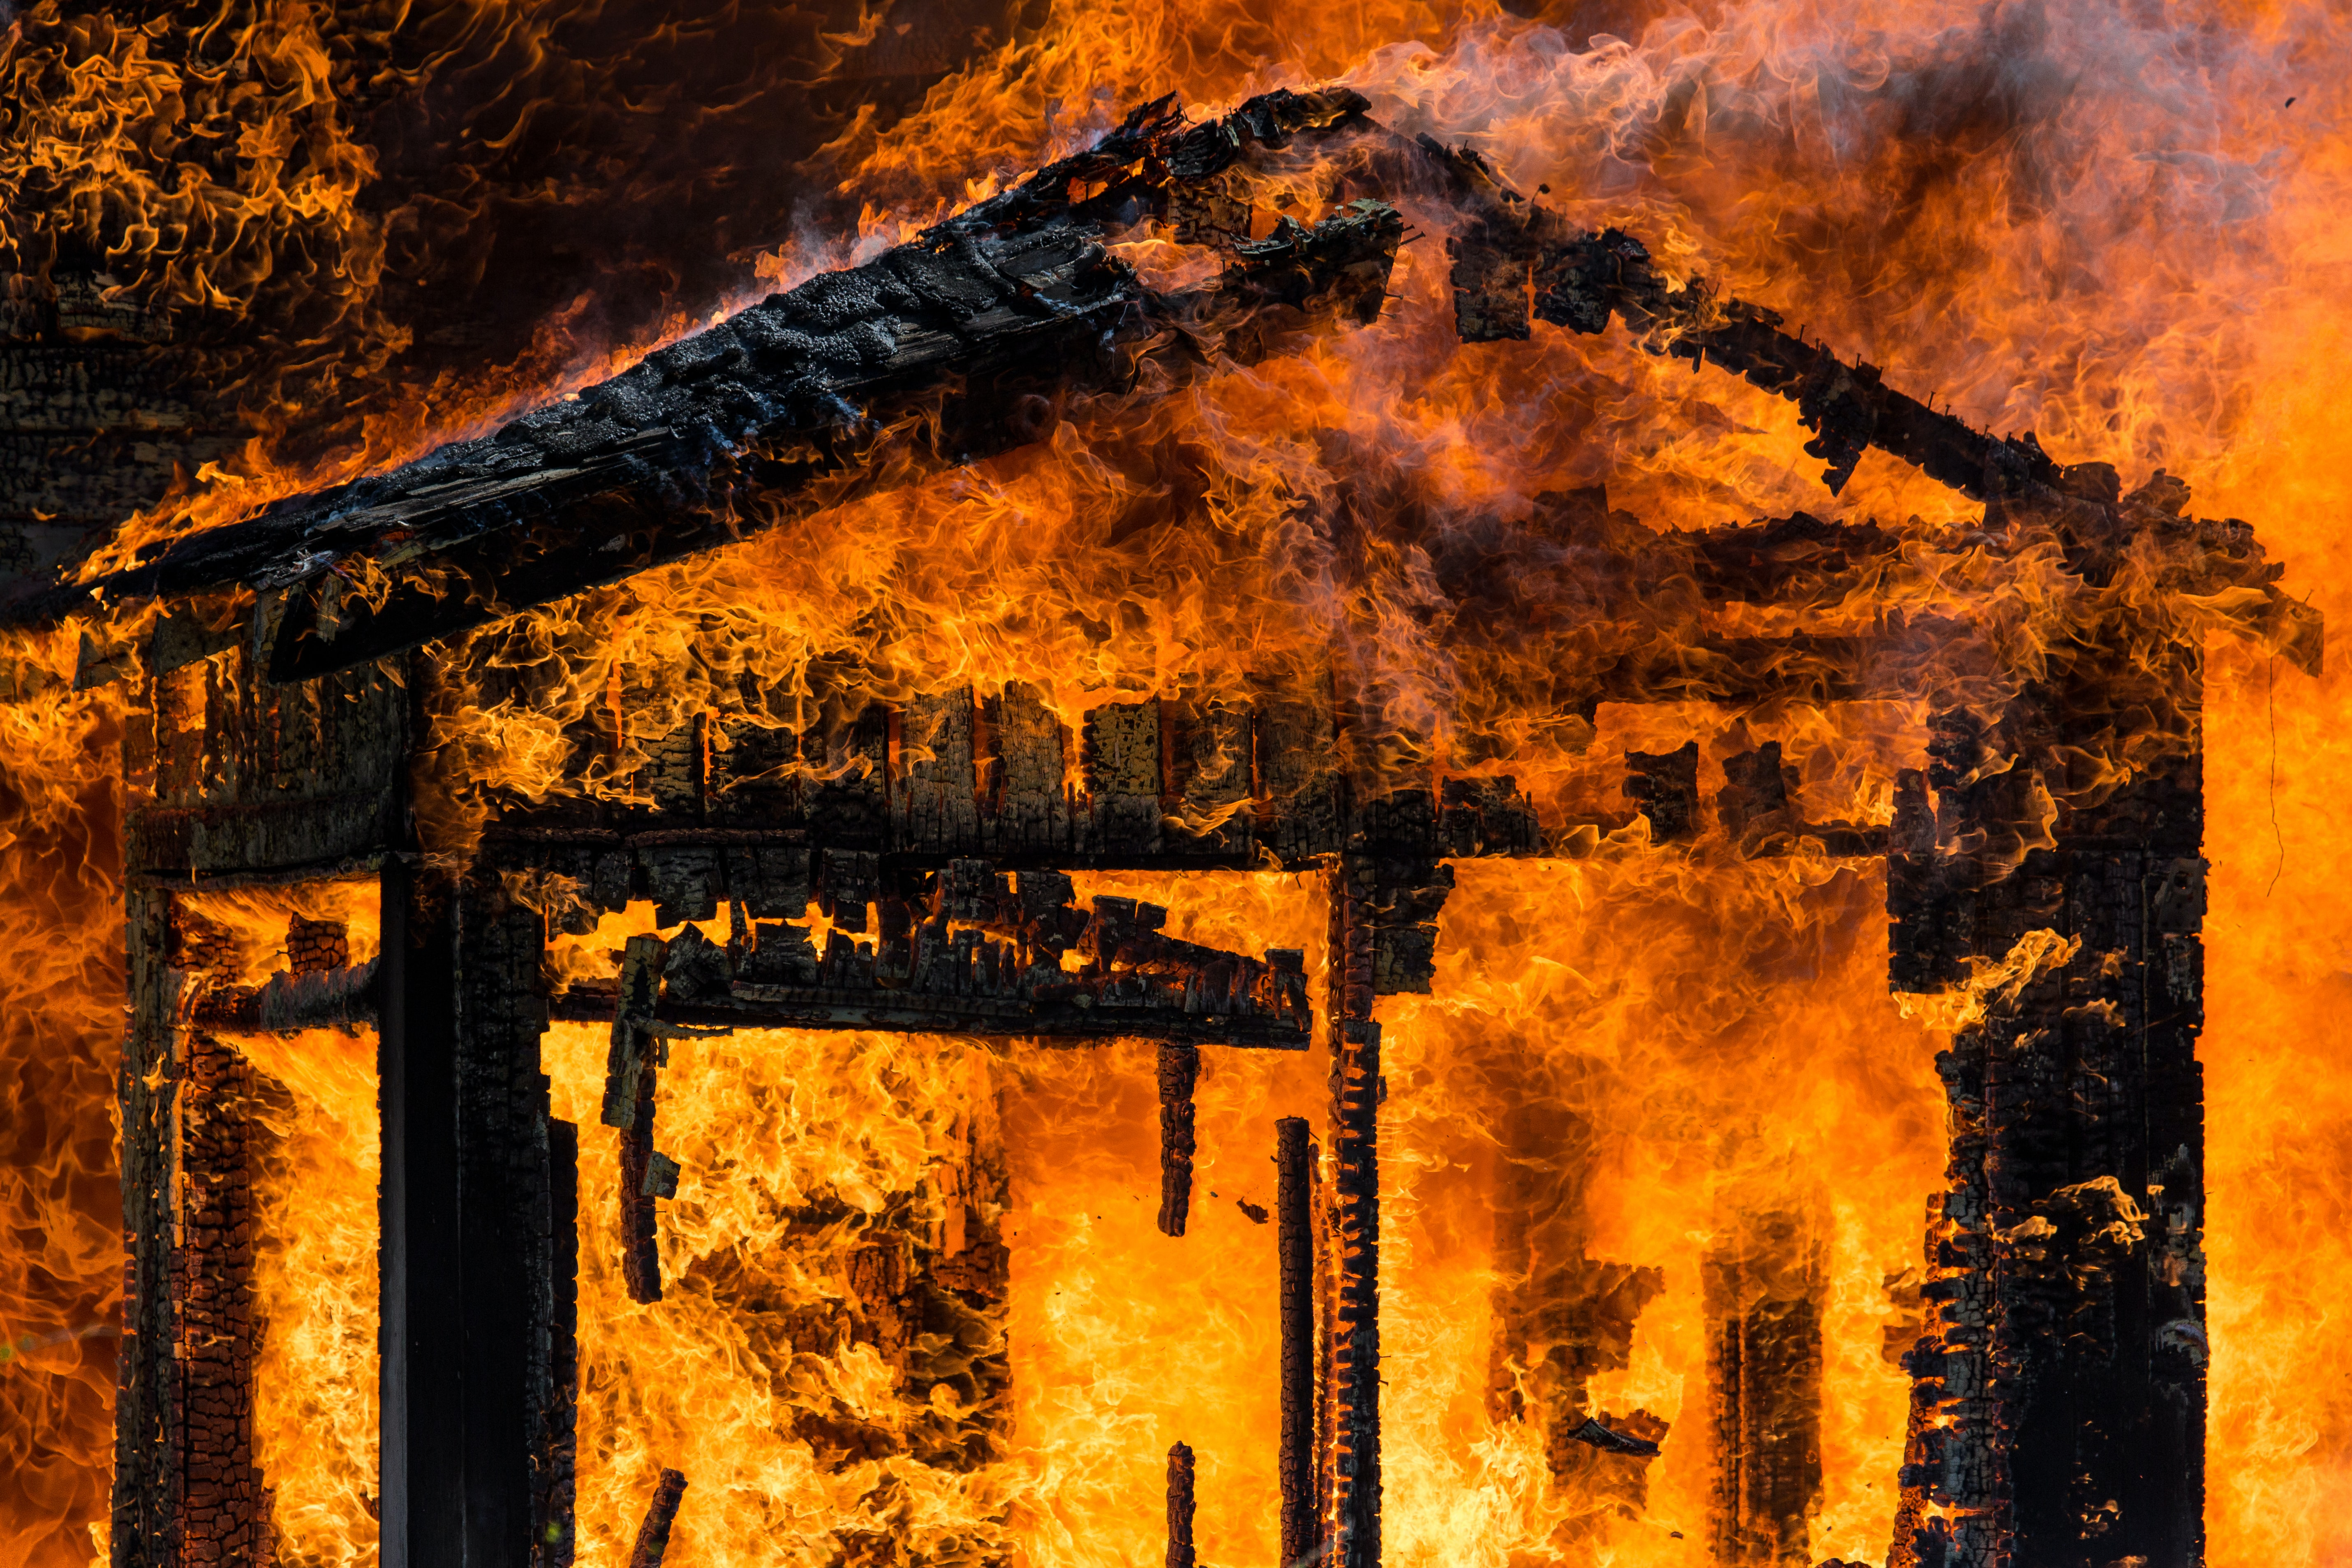 Photo of a house frame engulfed in flames, by Dave Hoefler